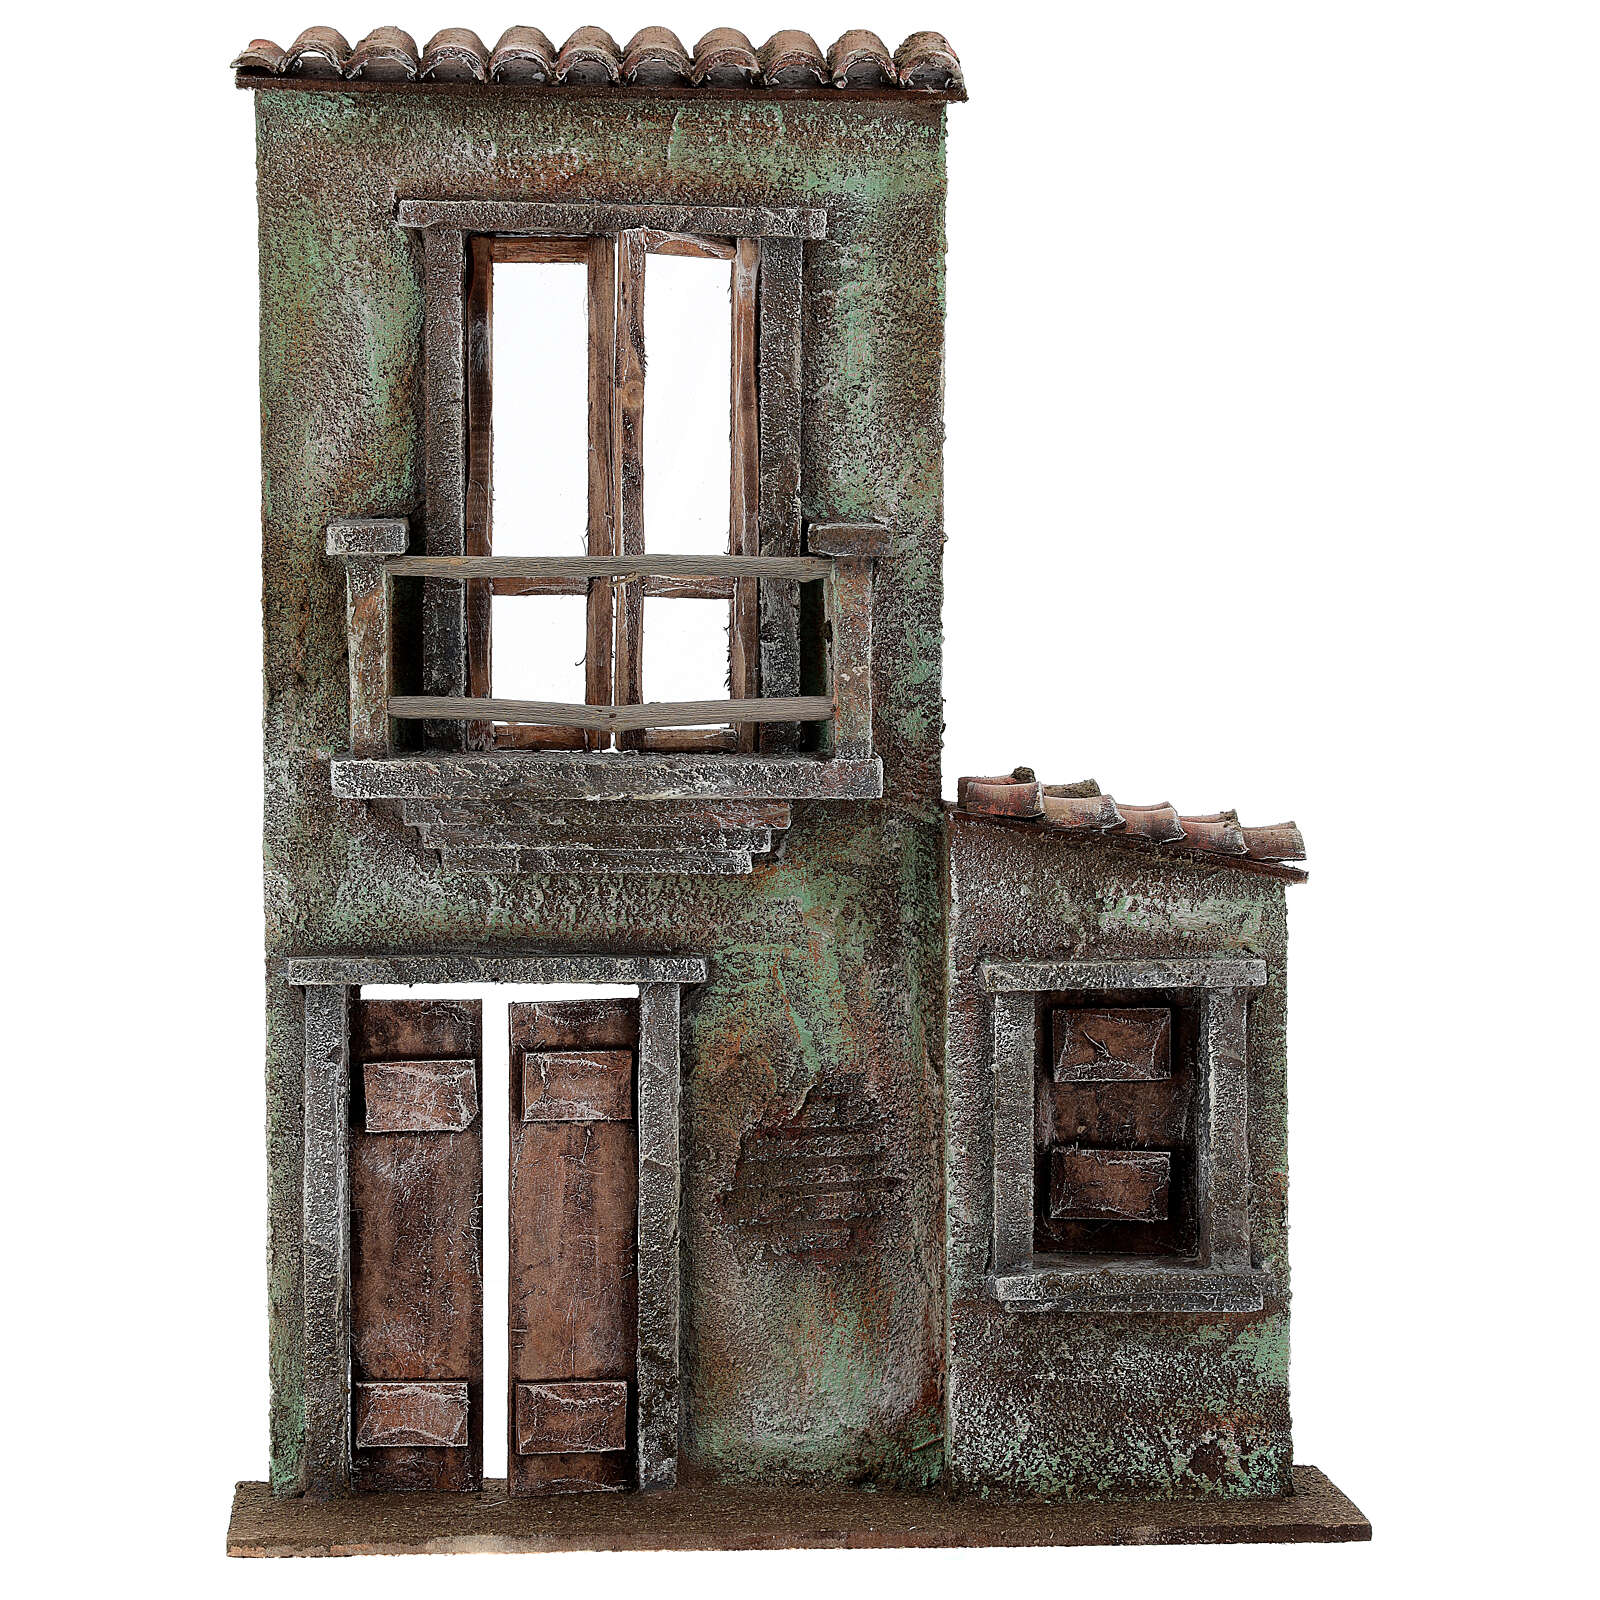 Miniature facade with balcony and door window 37x26.5x5 cm, for 11 cm nativity 4